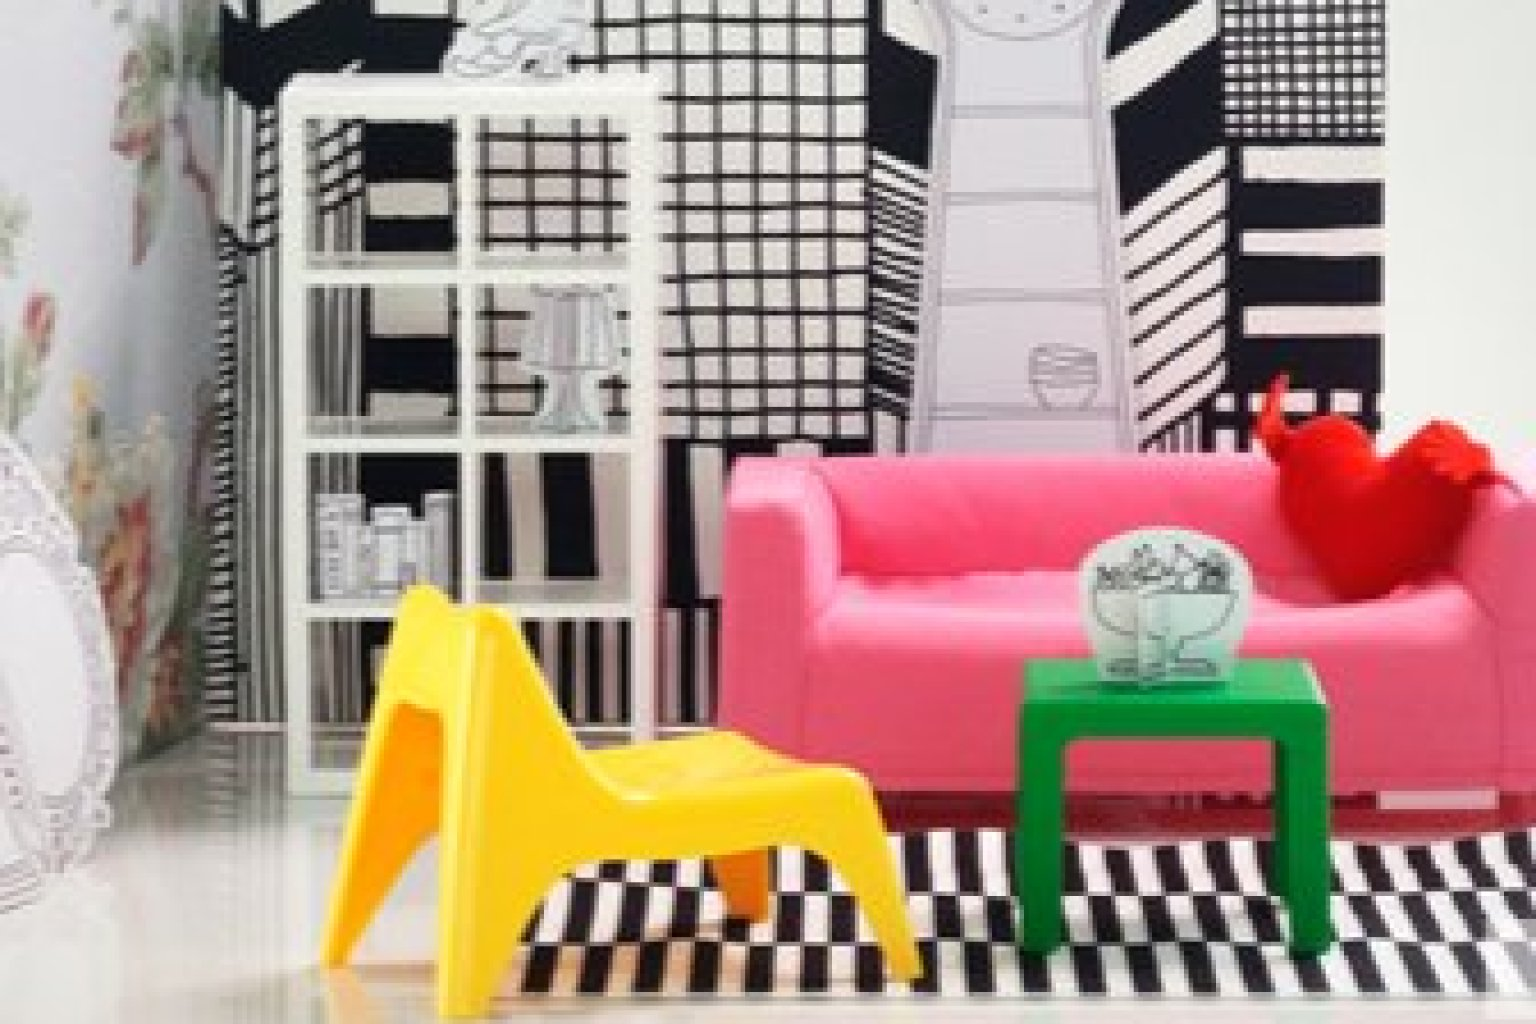 IKEA Miniature Furniture, For The Budget Minded Doll In Your Life (PHOTO) |  HuffPost